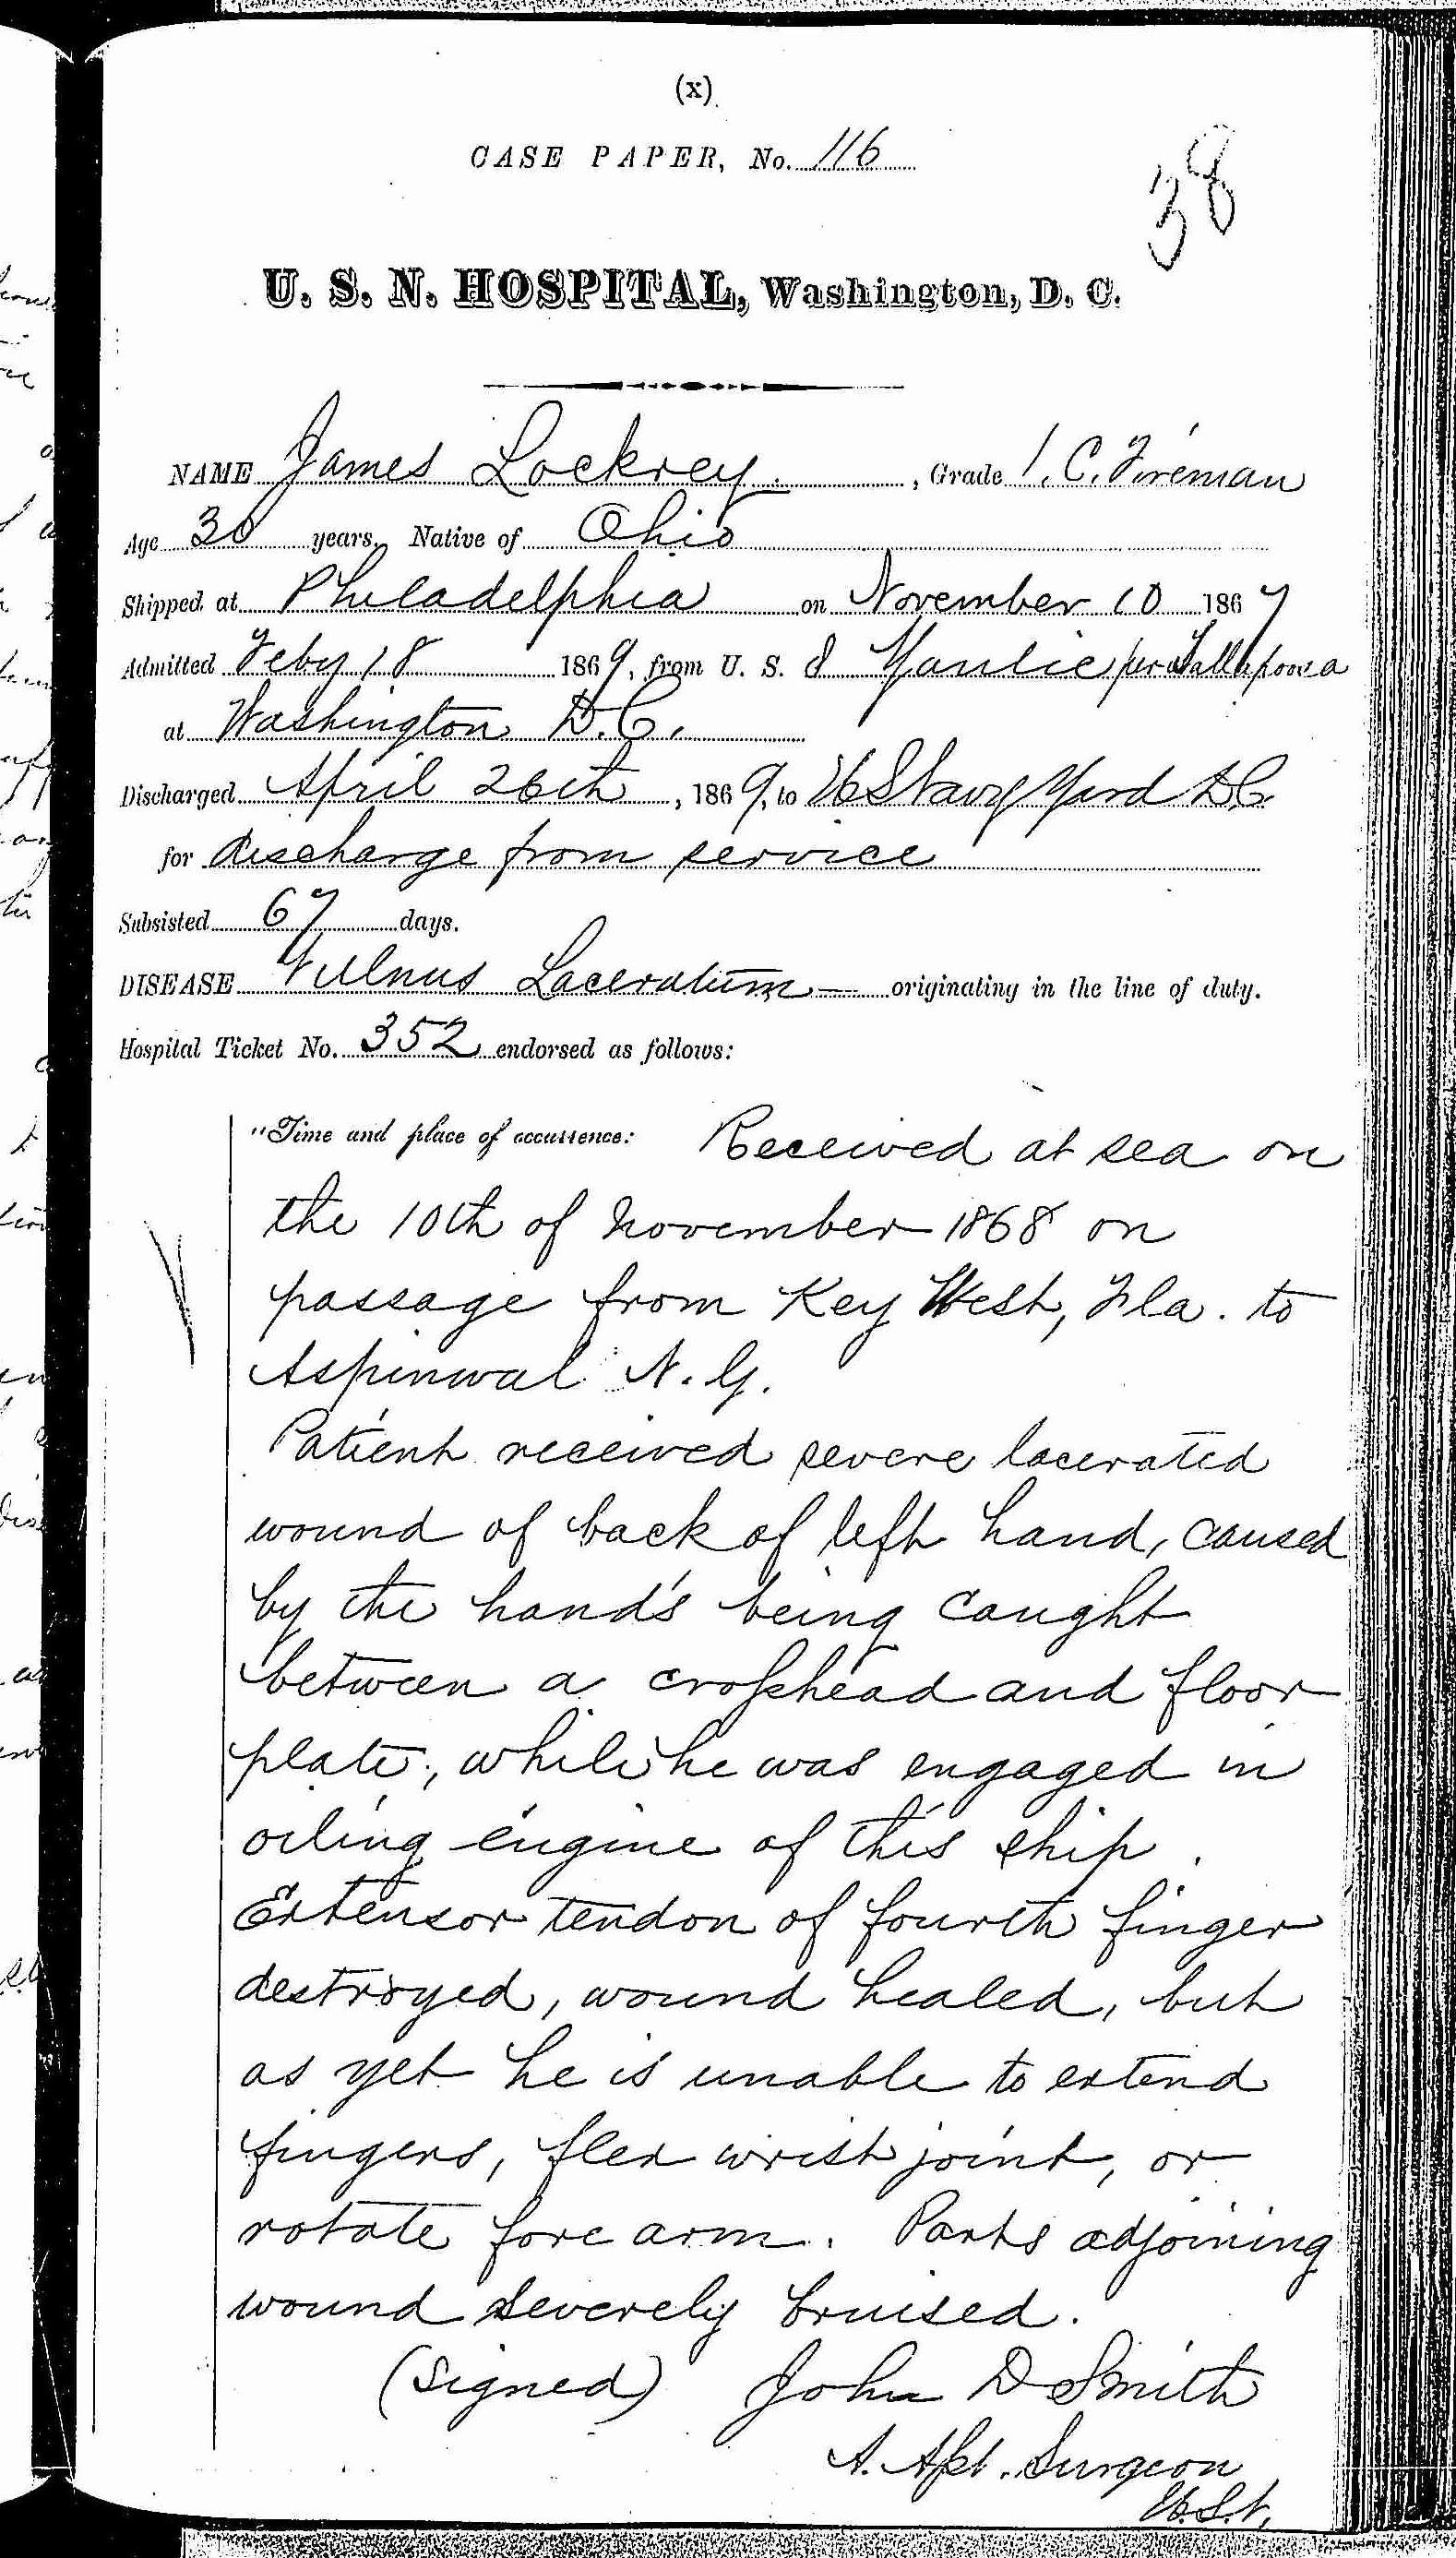 Entry for James Lockrey (page 1 of 5) in the log Hospital Tickets and Case Papers - Naval Hospital - Washington, D.C. - 1868-69